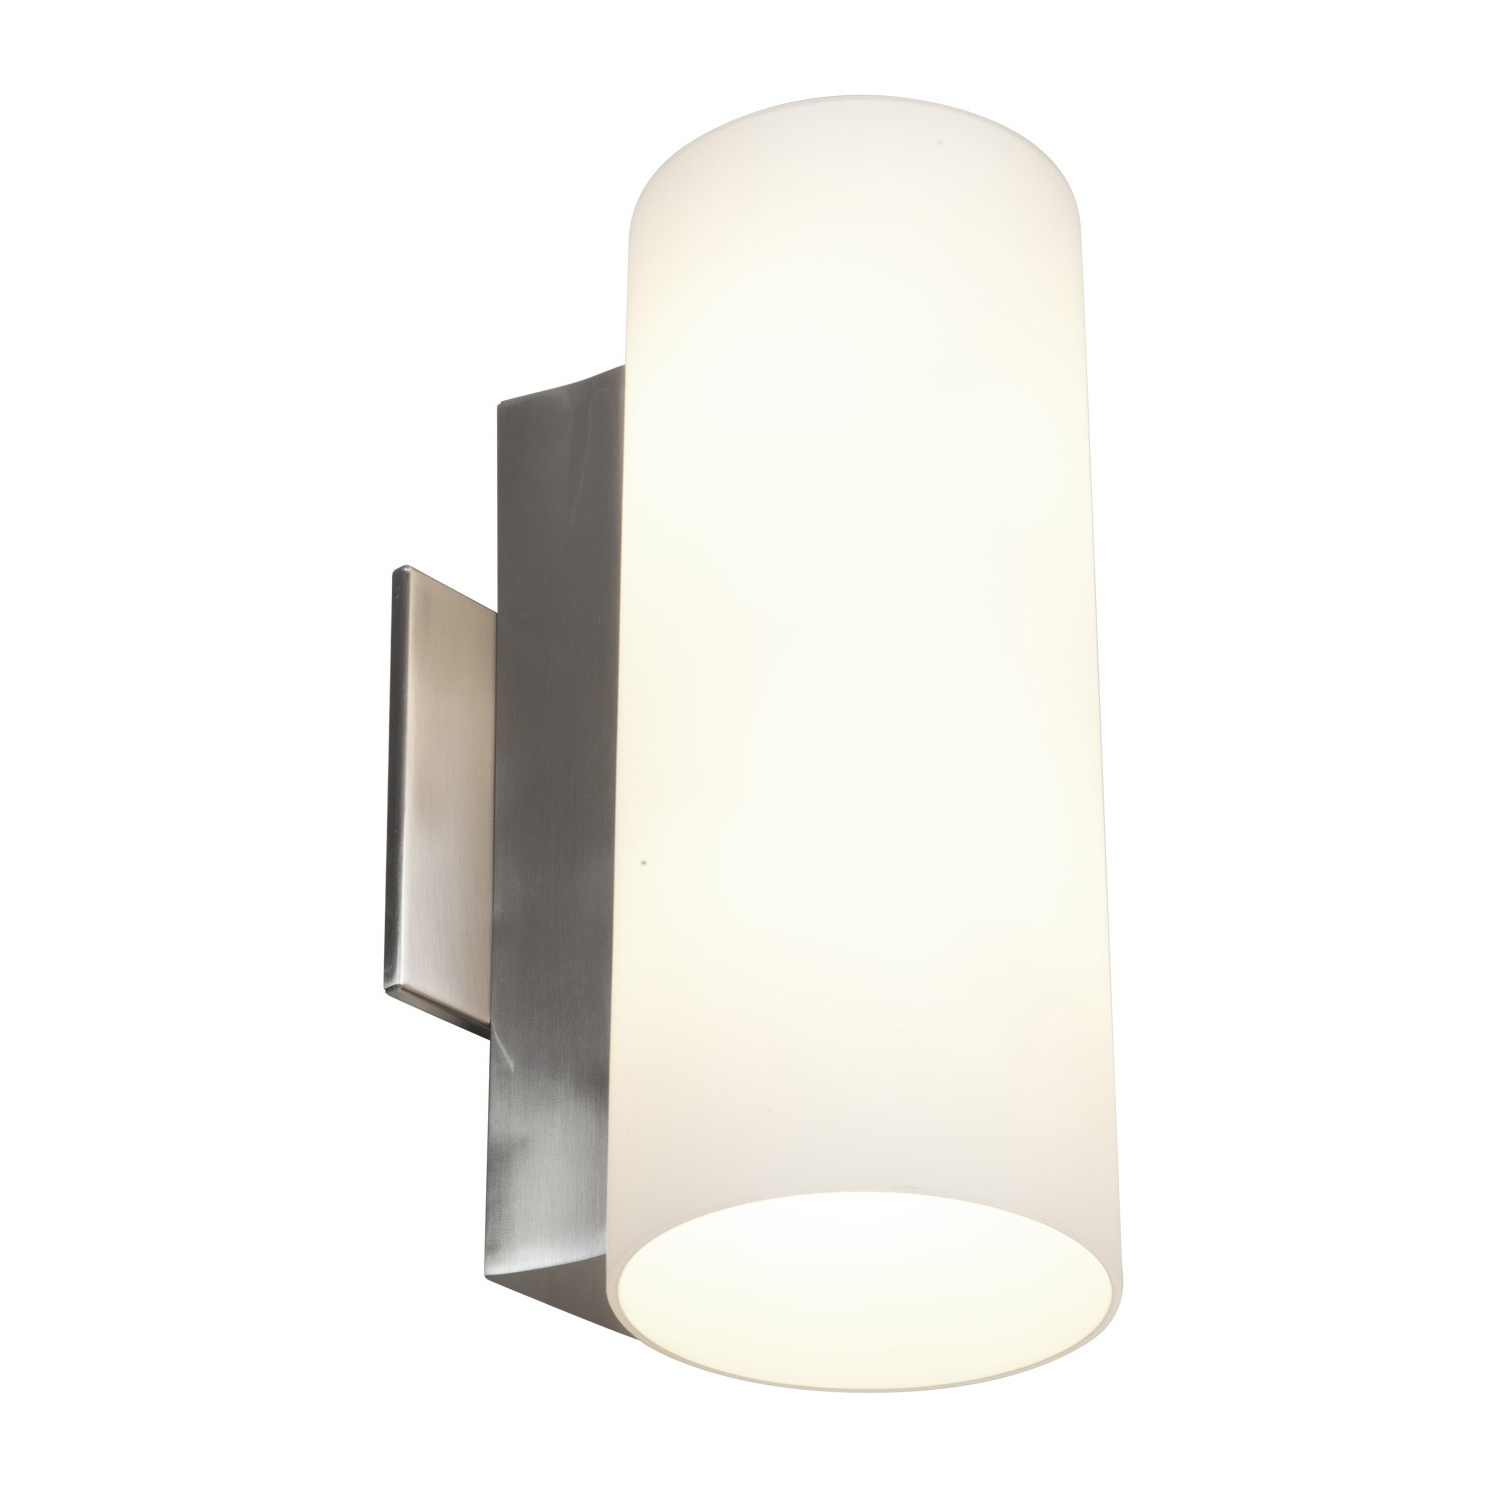 Bathroom Wall Sconce With Electrical Outlet Light Fixtures